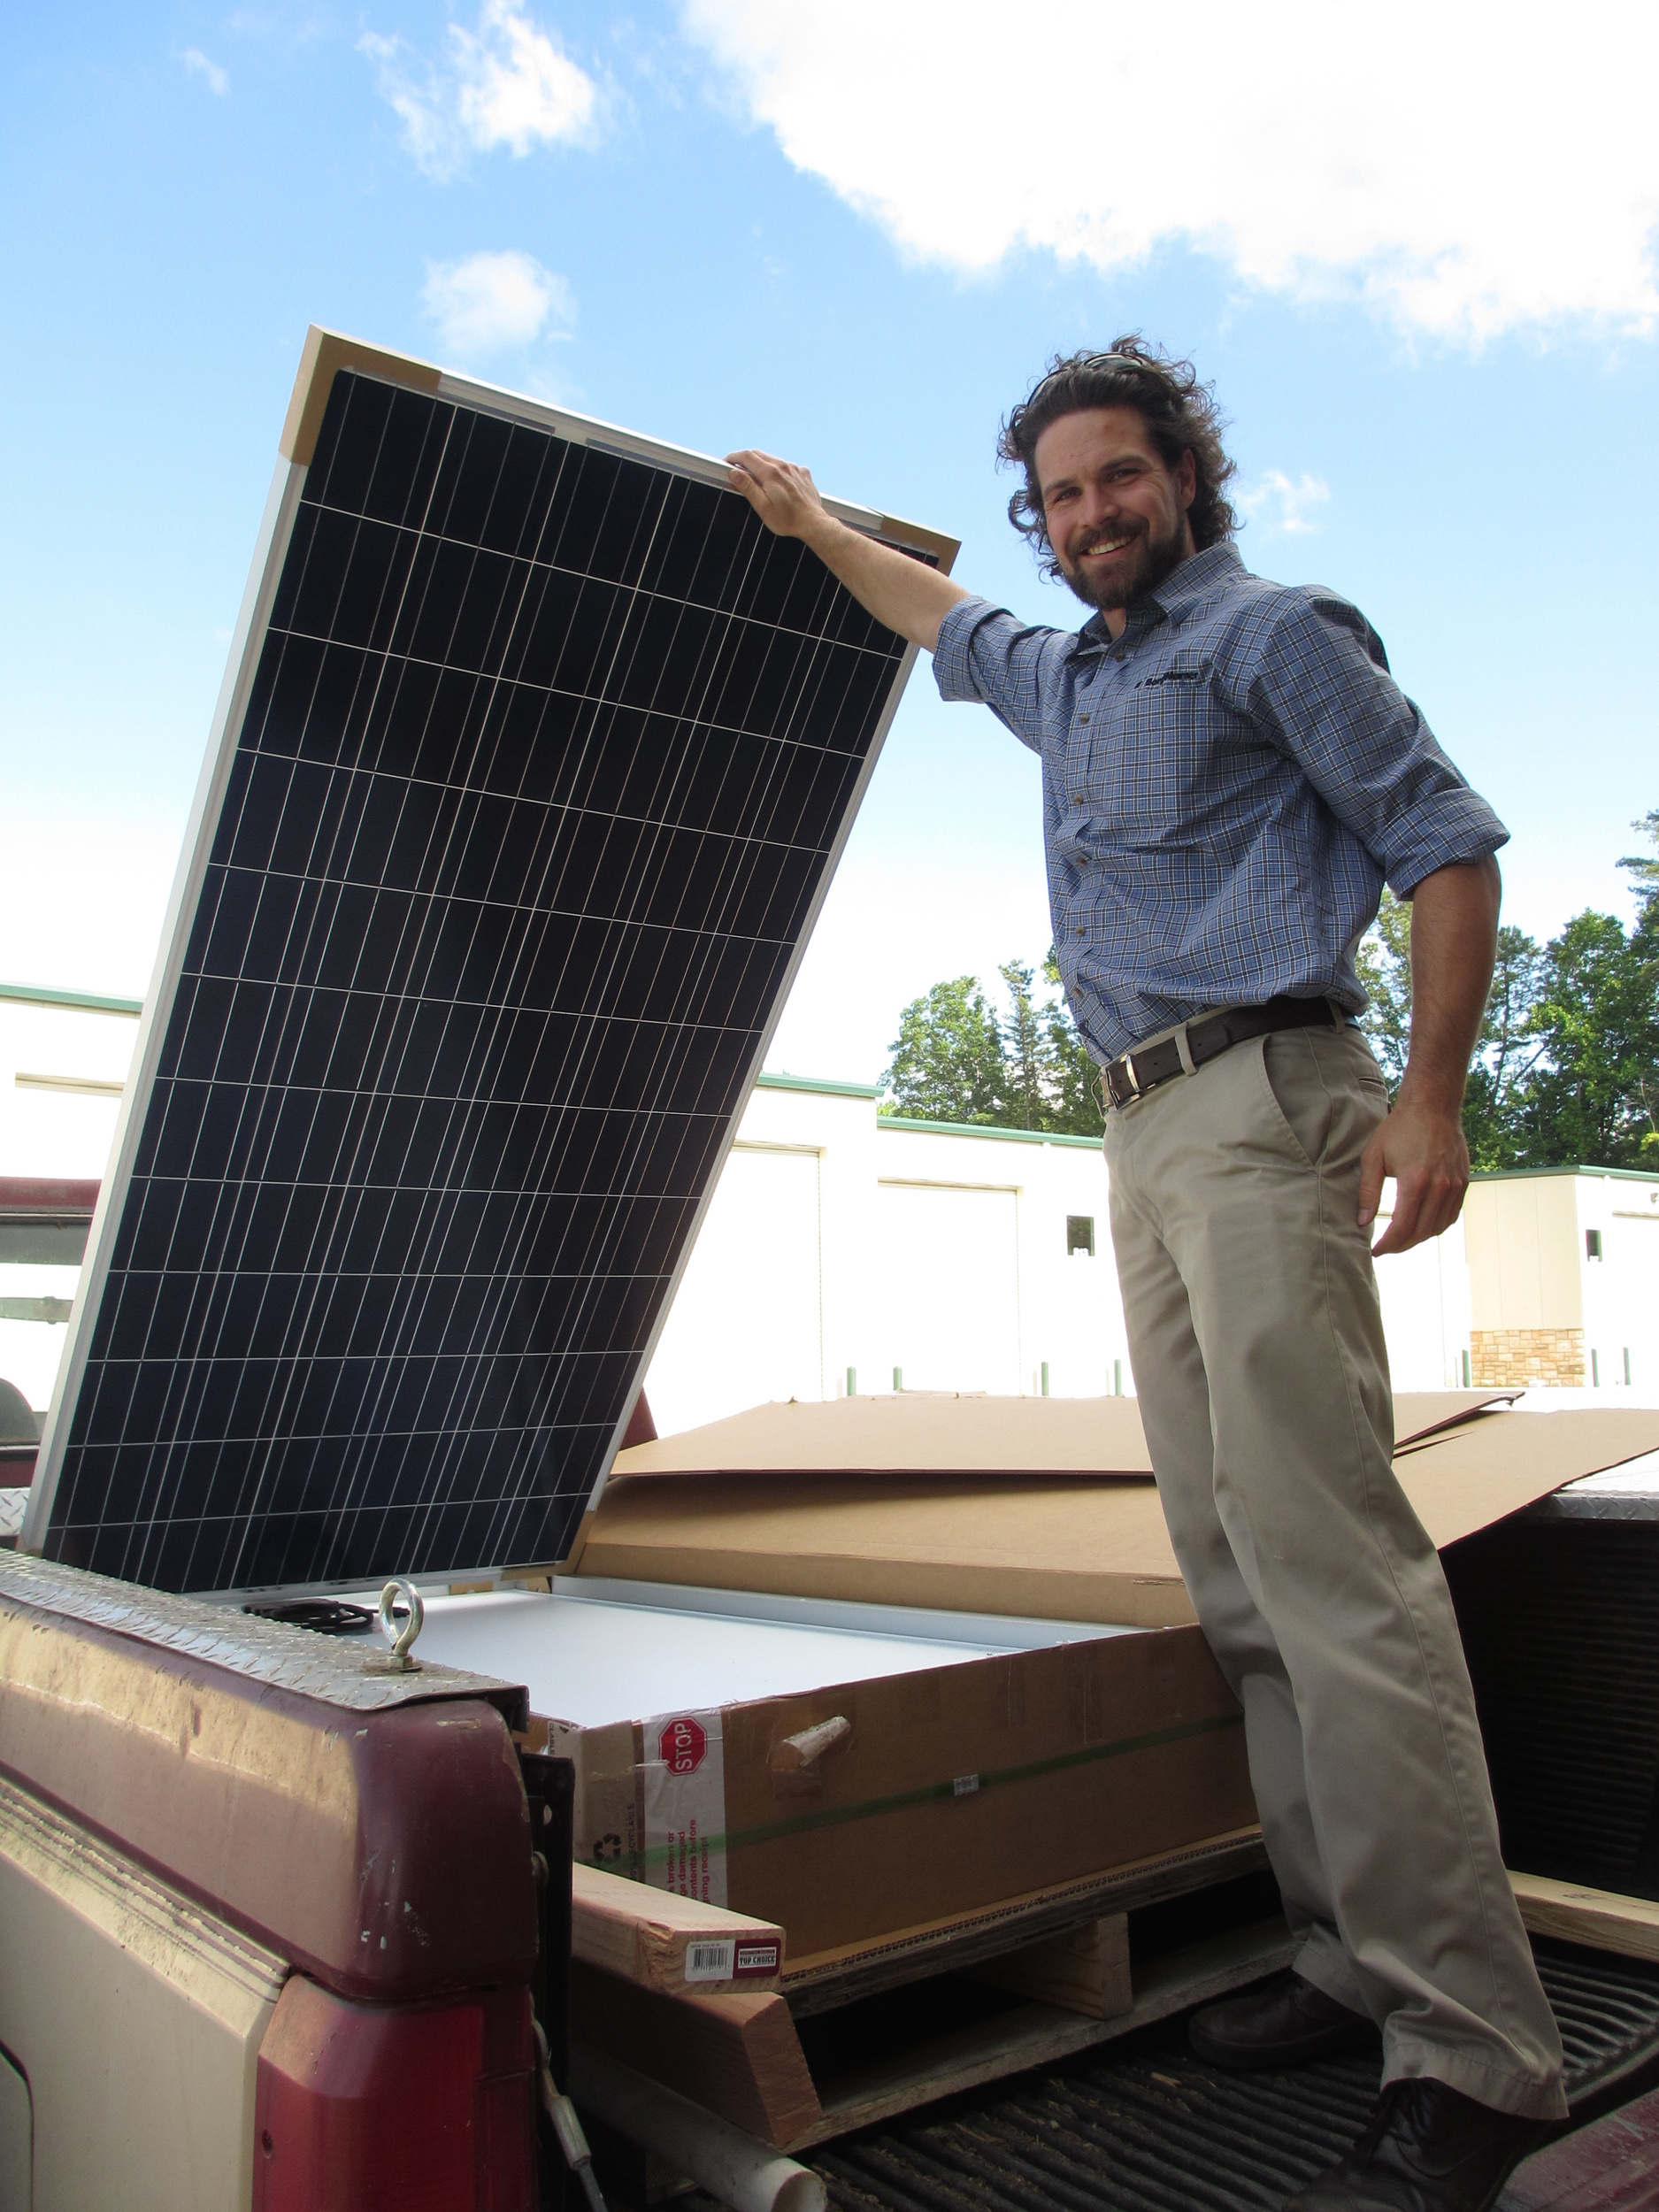 The day our solar panels arrived during our rebuild.